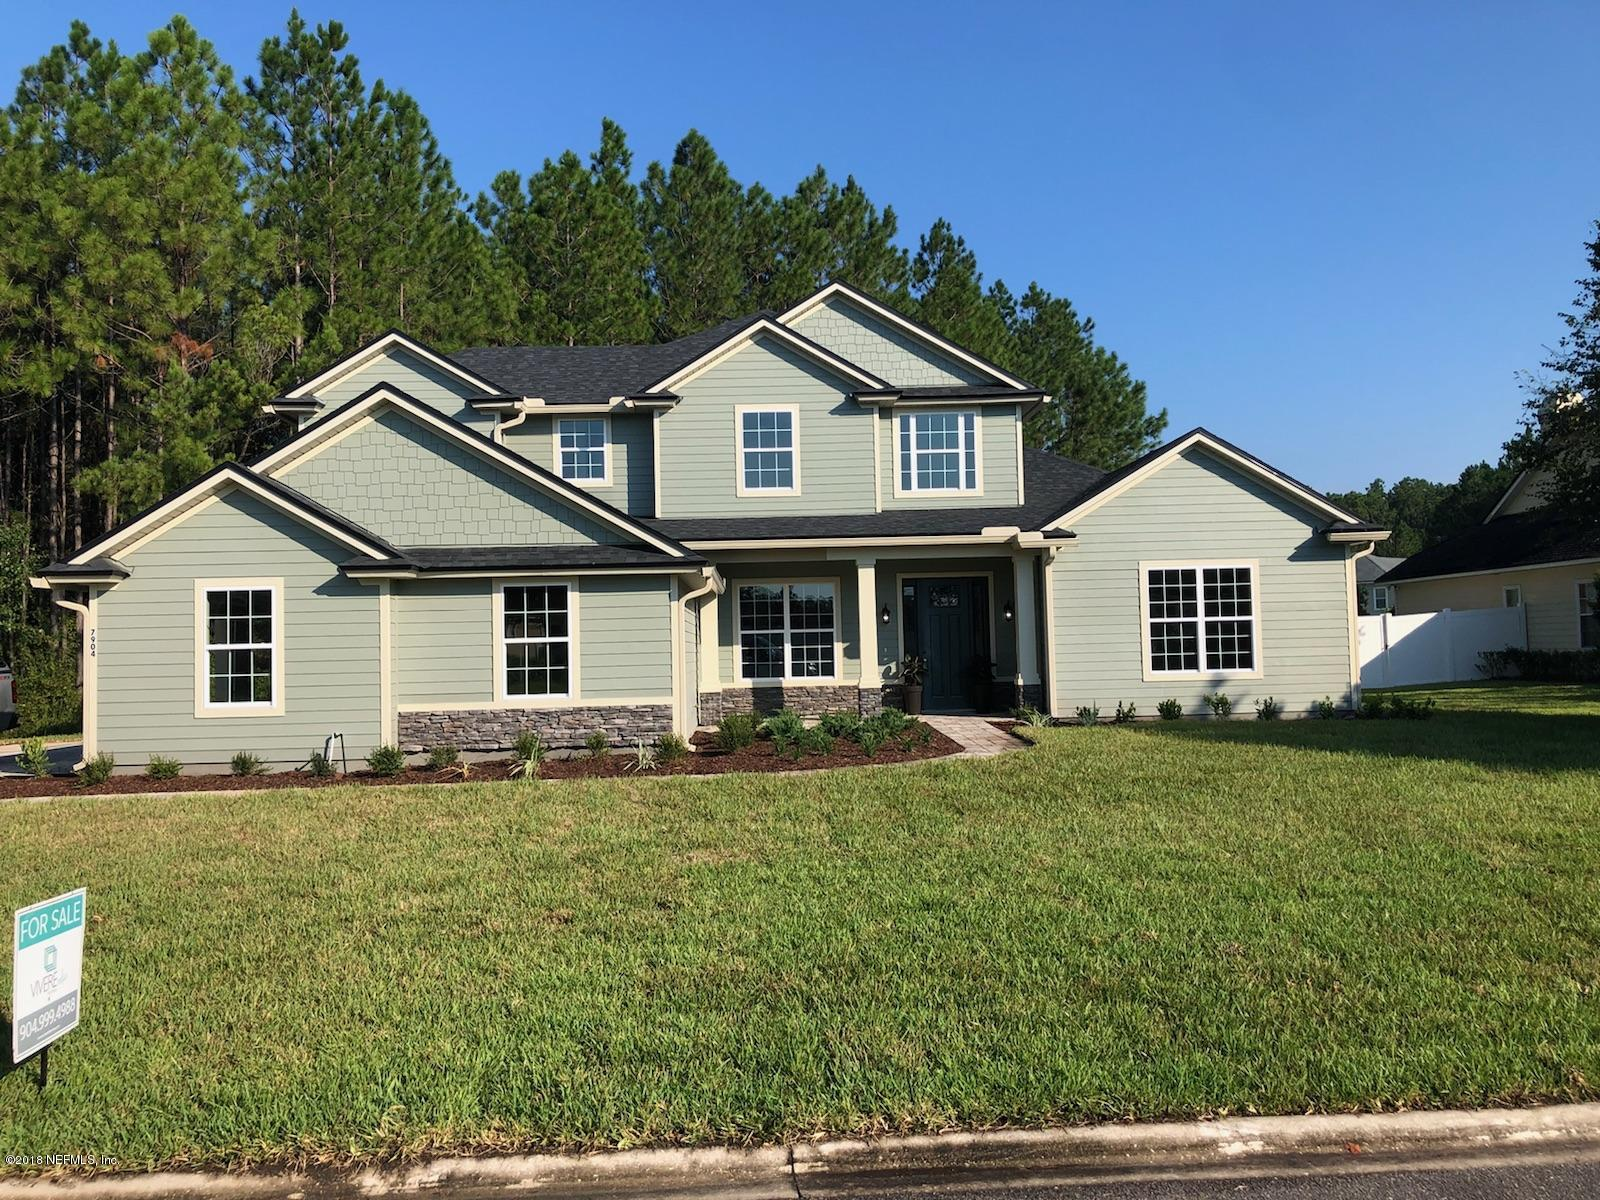 7904 CAPESIDE, JACKSONVILLE, FLORIDA 32222, 5 Bedrooms Bedrooms, ,4 BathroomsBathrooms,Residential - single family,For sale,CAPESIDE,934509